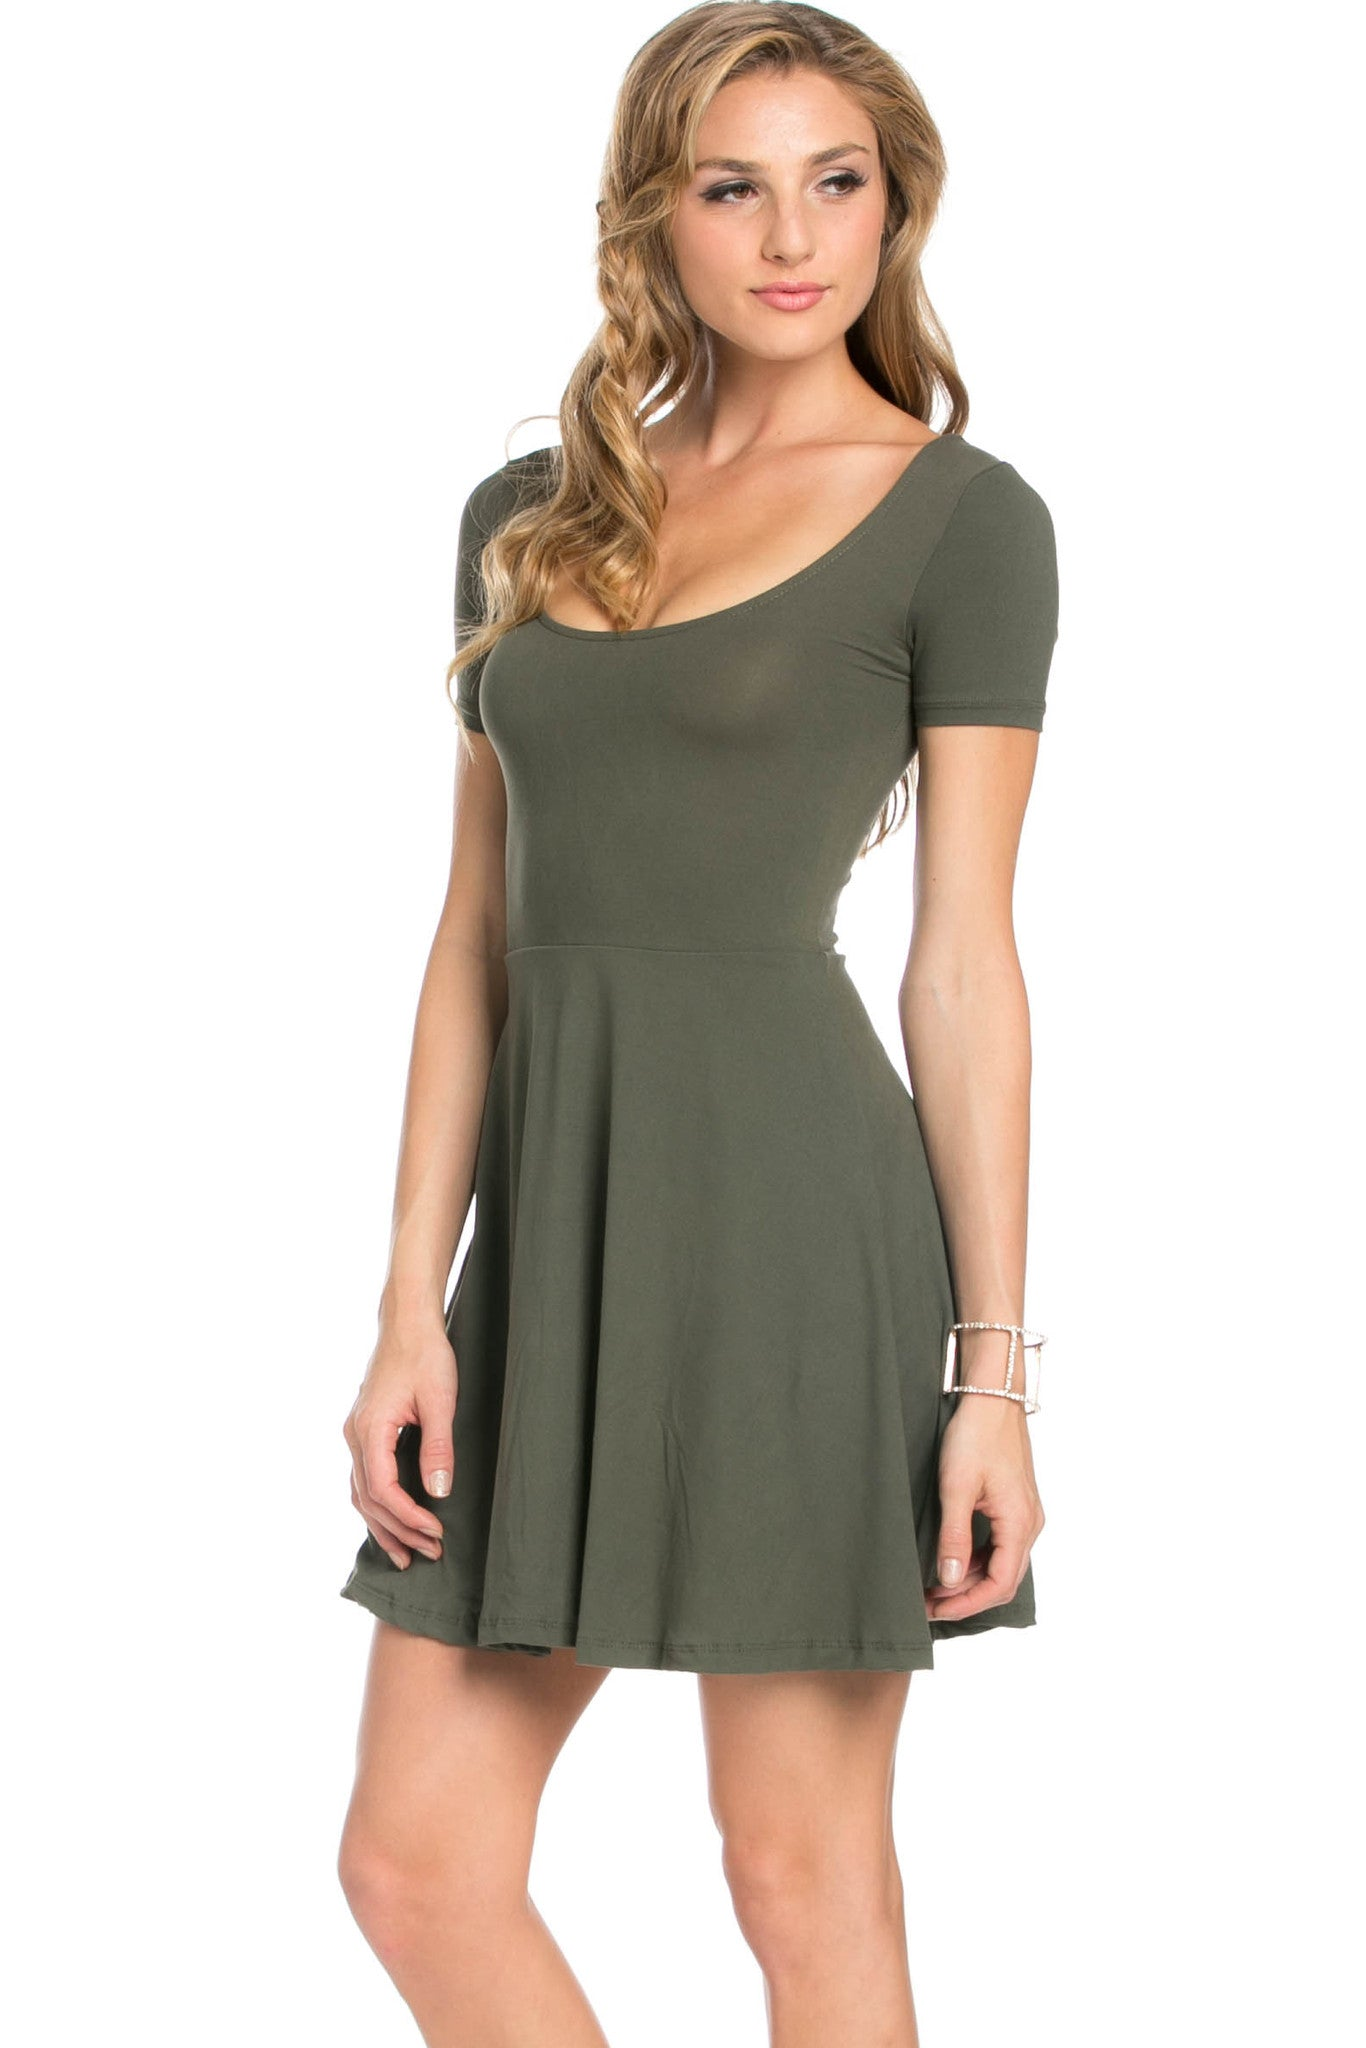 Micro Suede Olive Mini Dress - Dresses - My Yuccie - 1